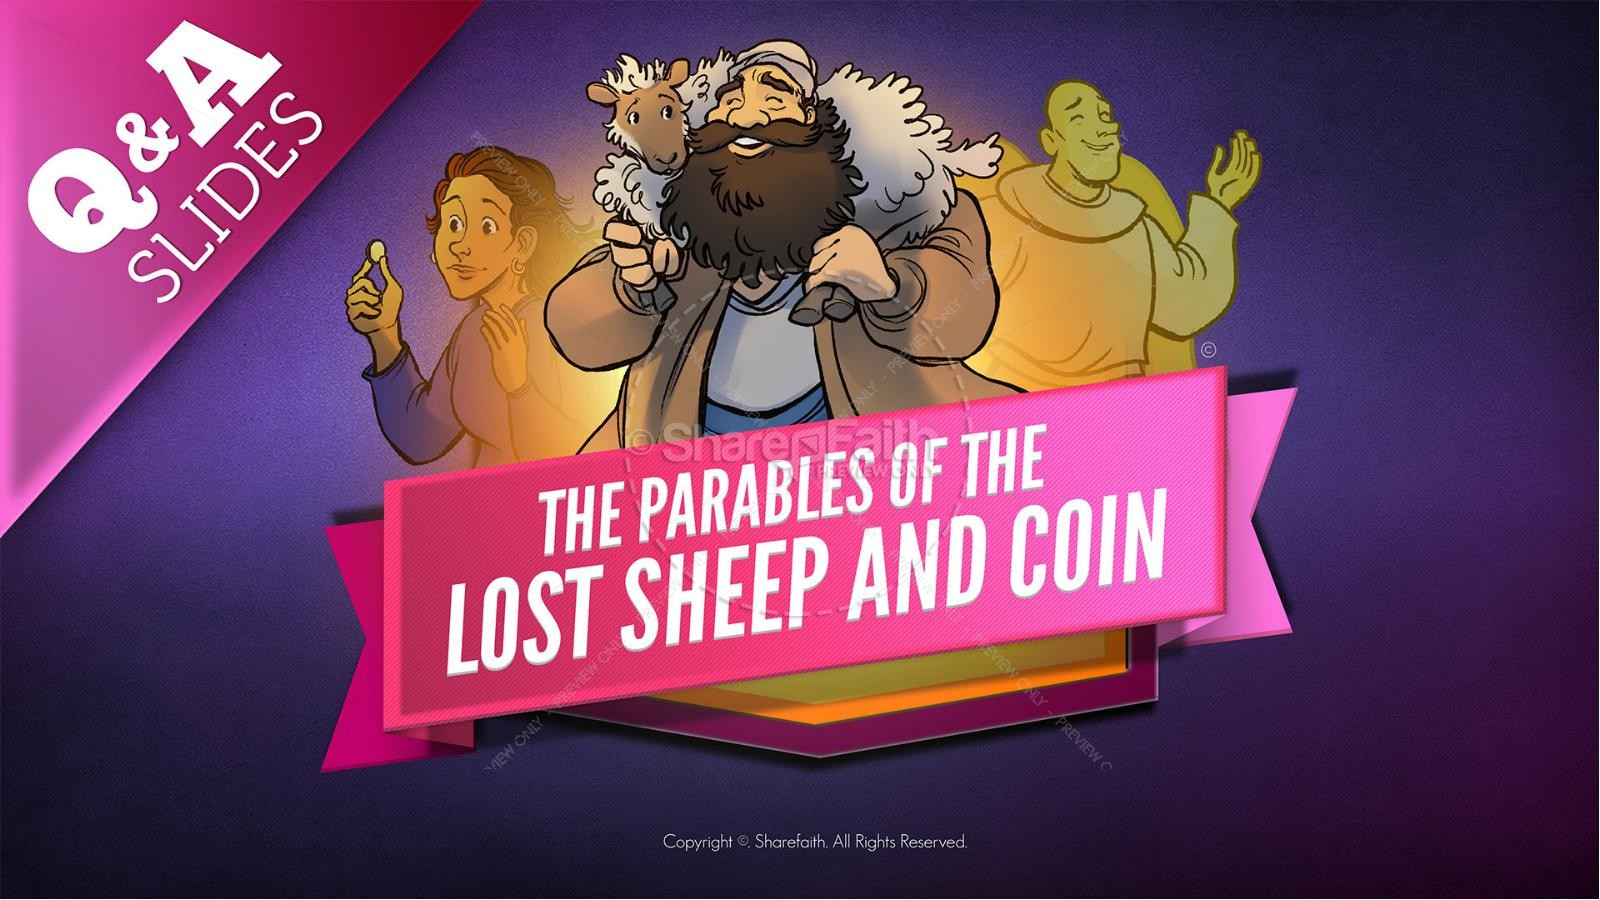 Luke 15 The Parables of the Lost Sheep and Coin Kids Bible Story | slide 9